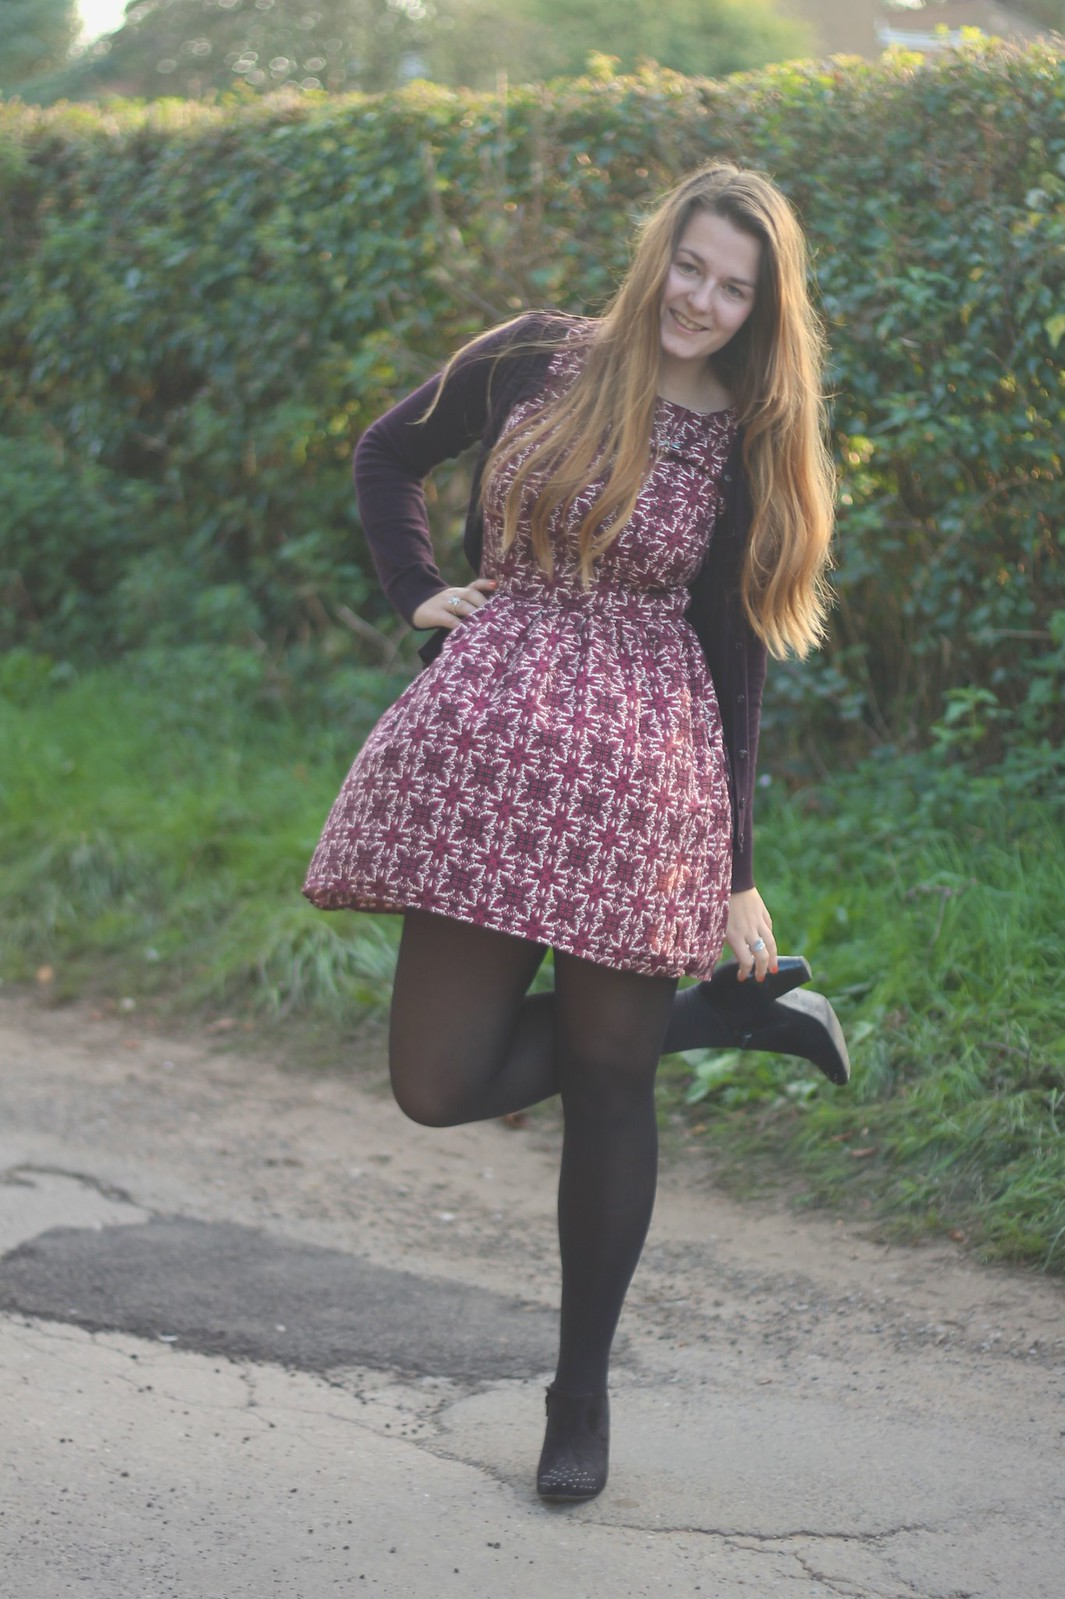 Autumn Paisley dress